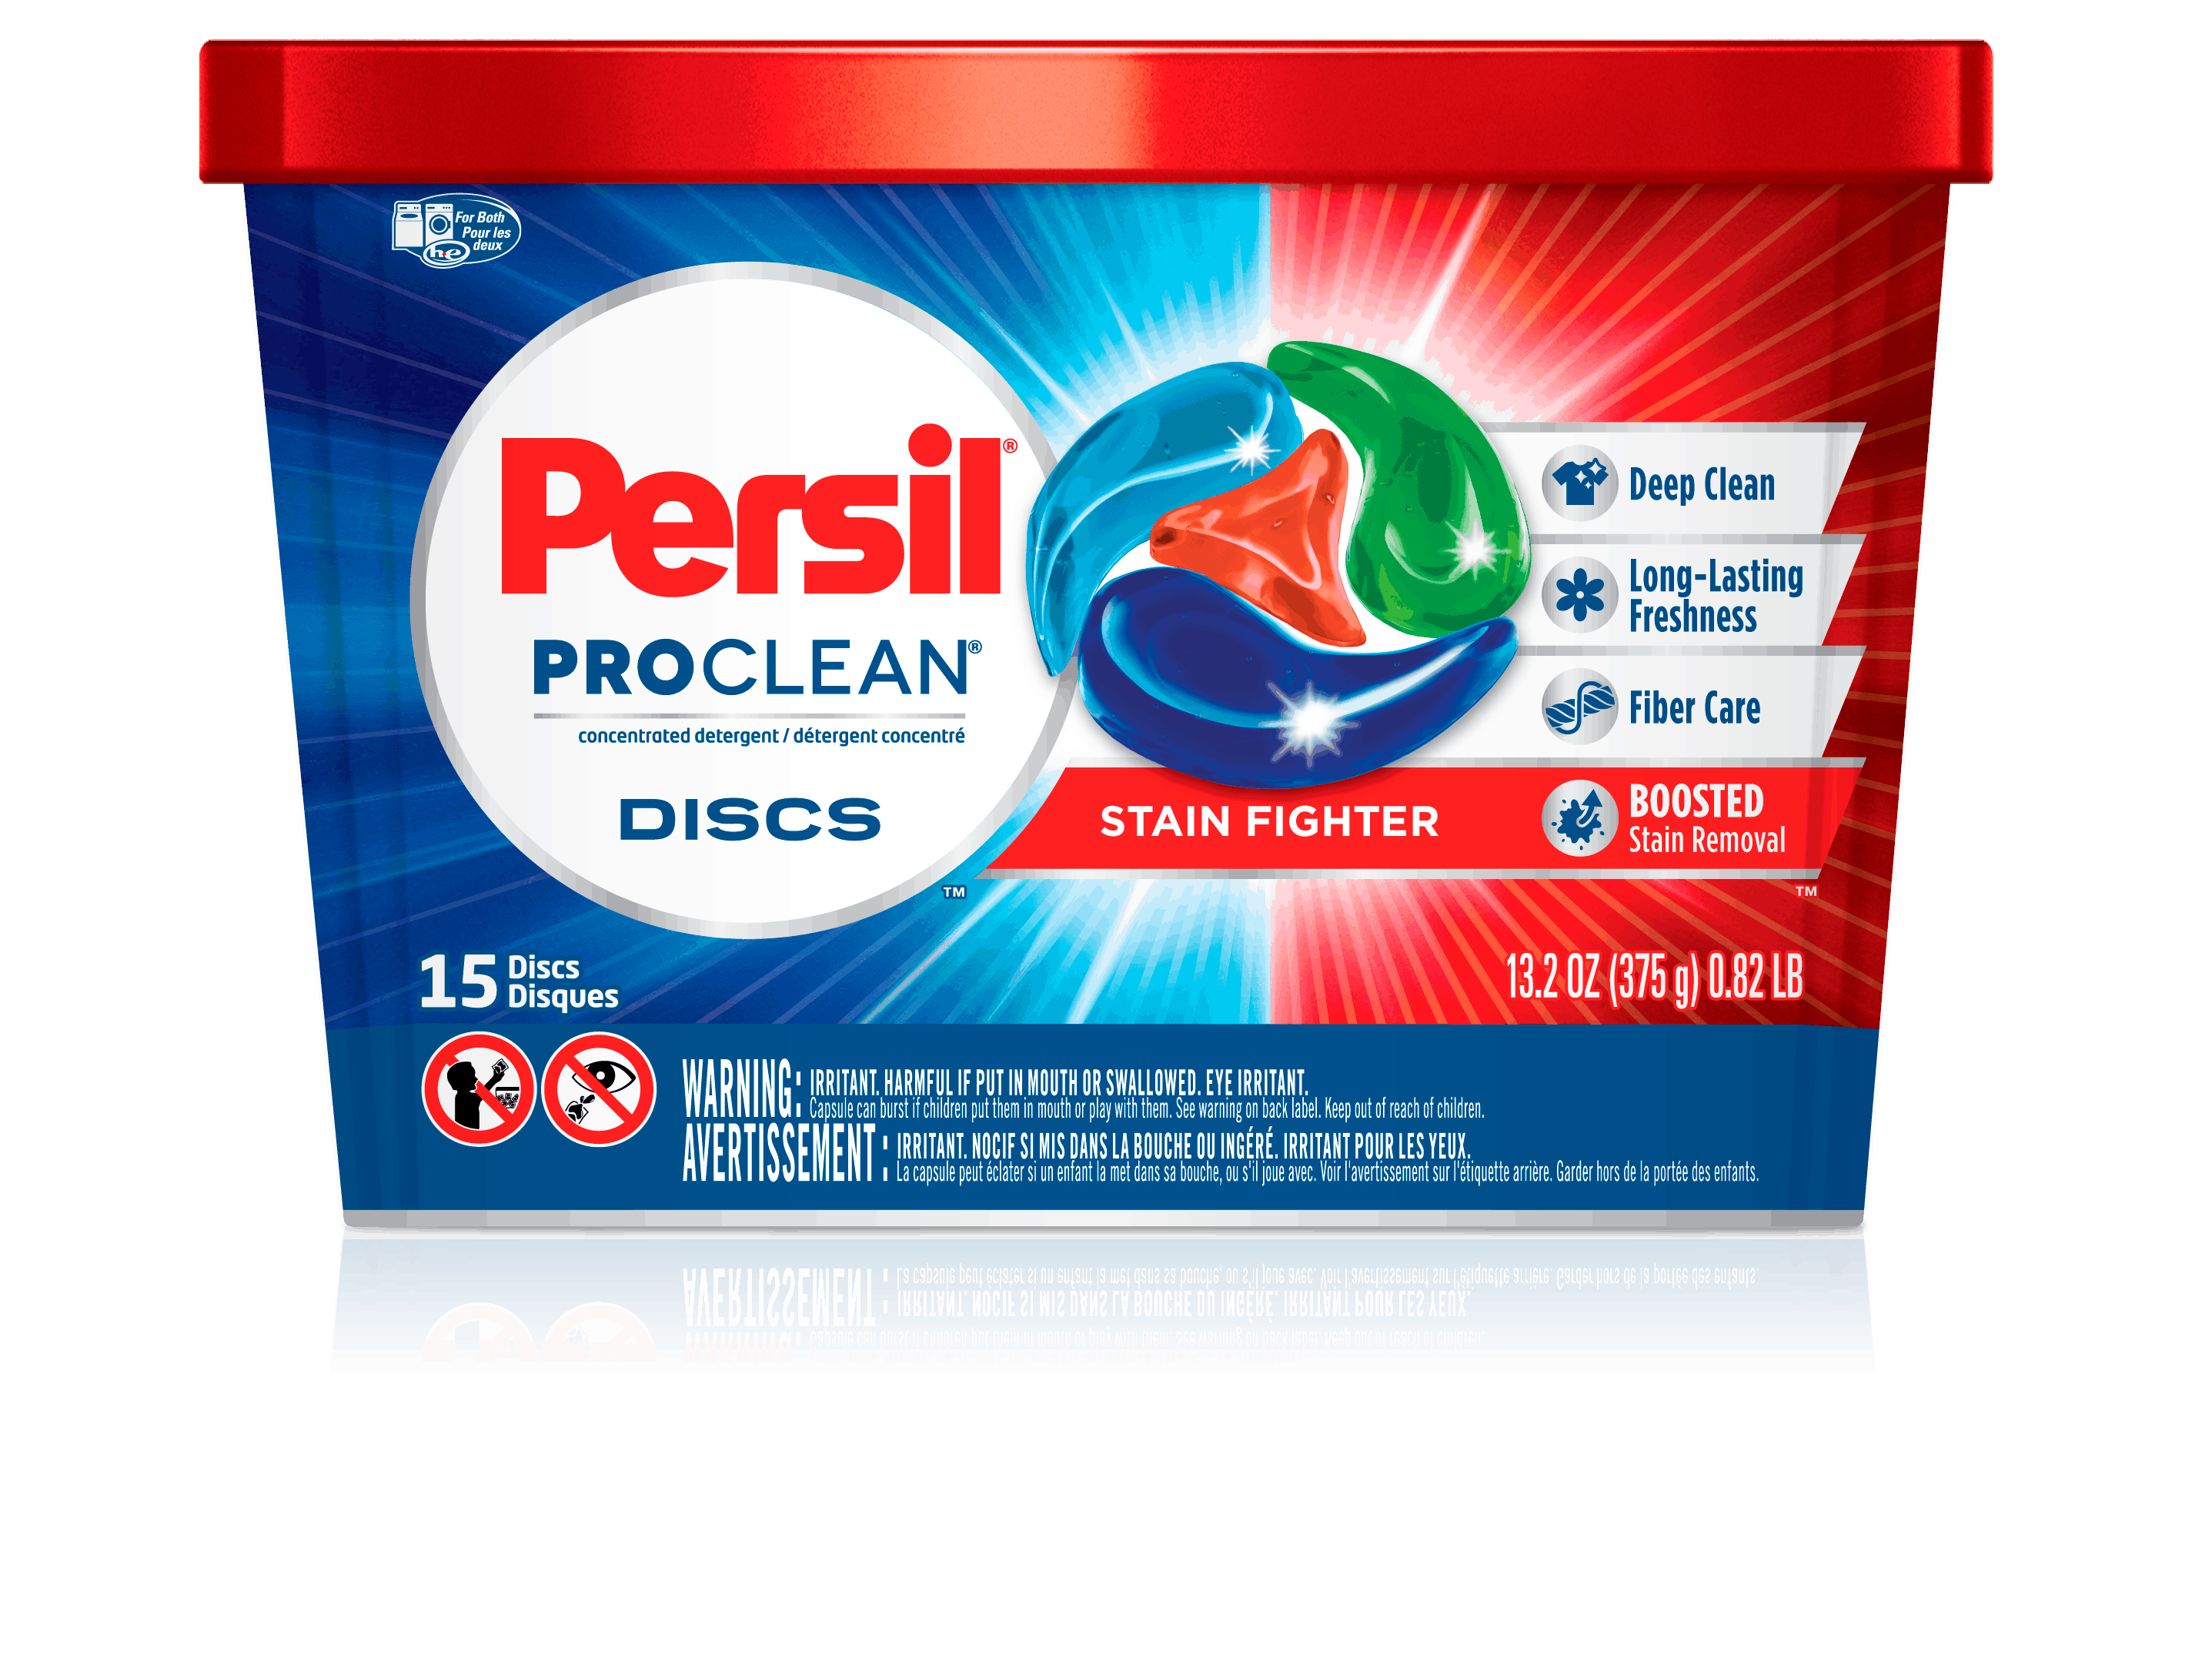 photograph regarding Printable Rogaine Coupon referred to as Persil Printable Coupon - Printable Coupon codes and Offers